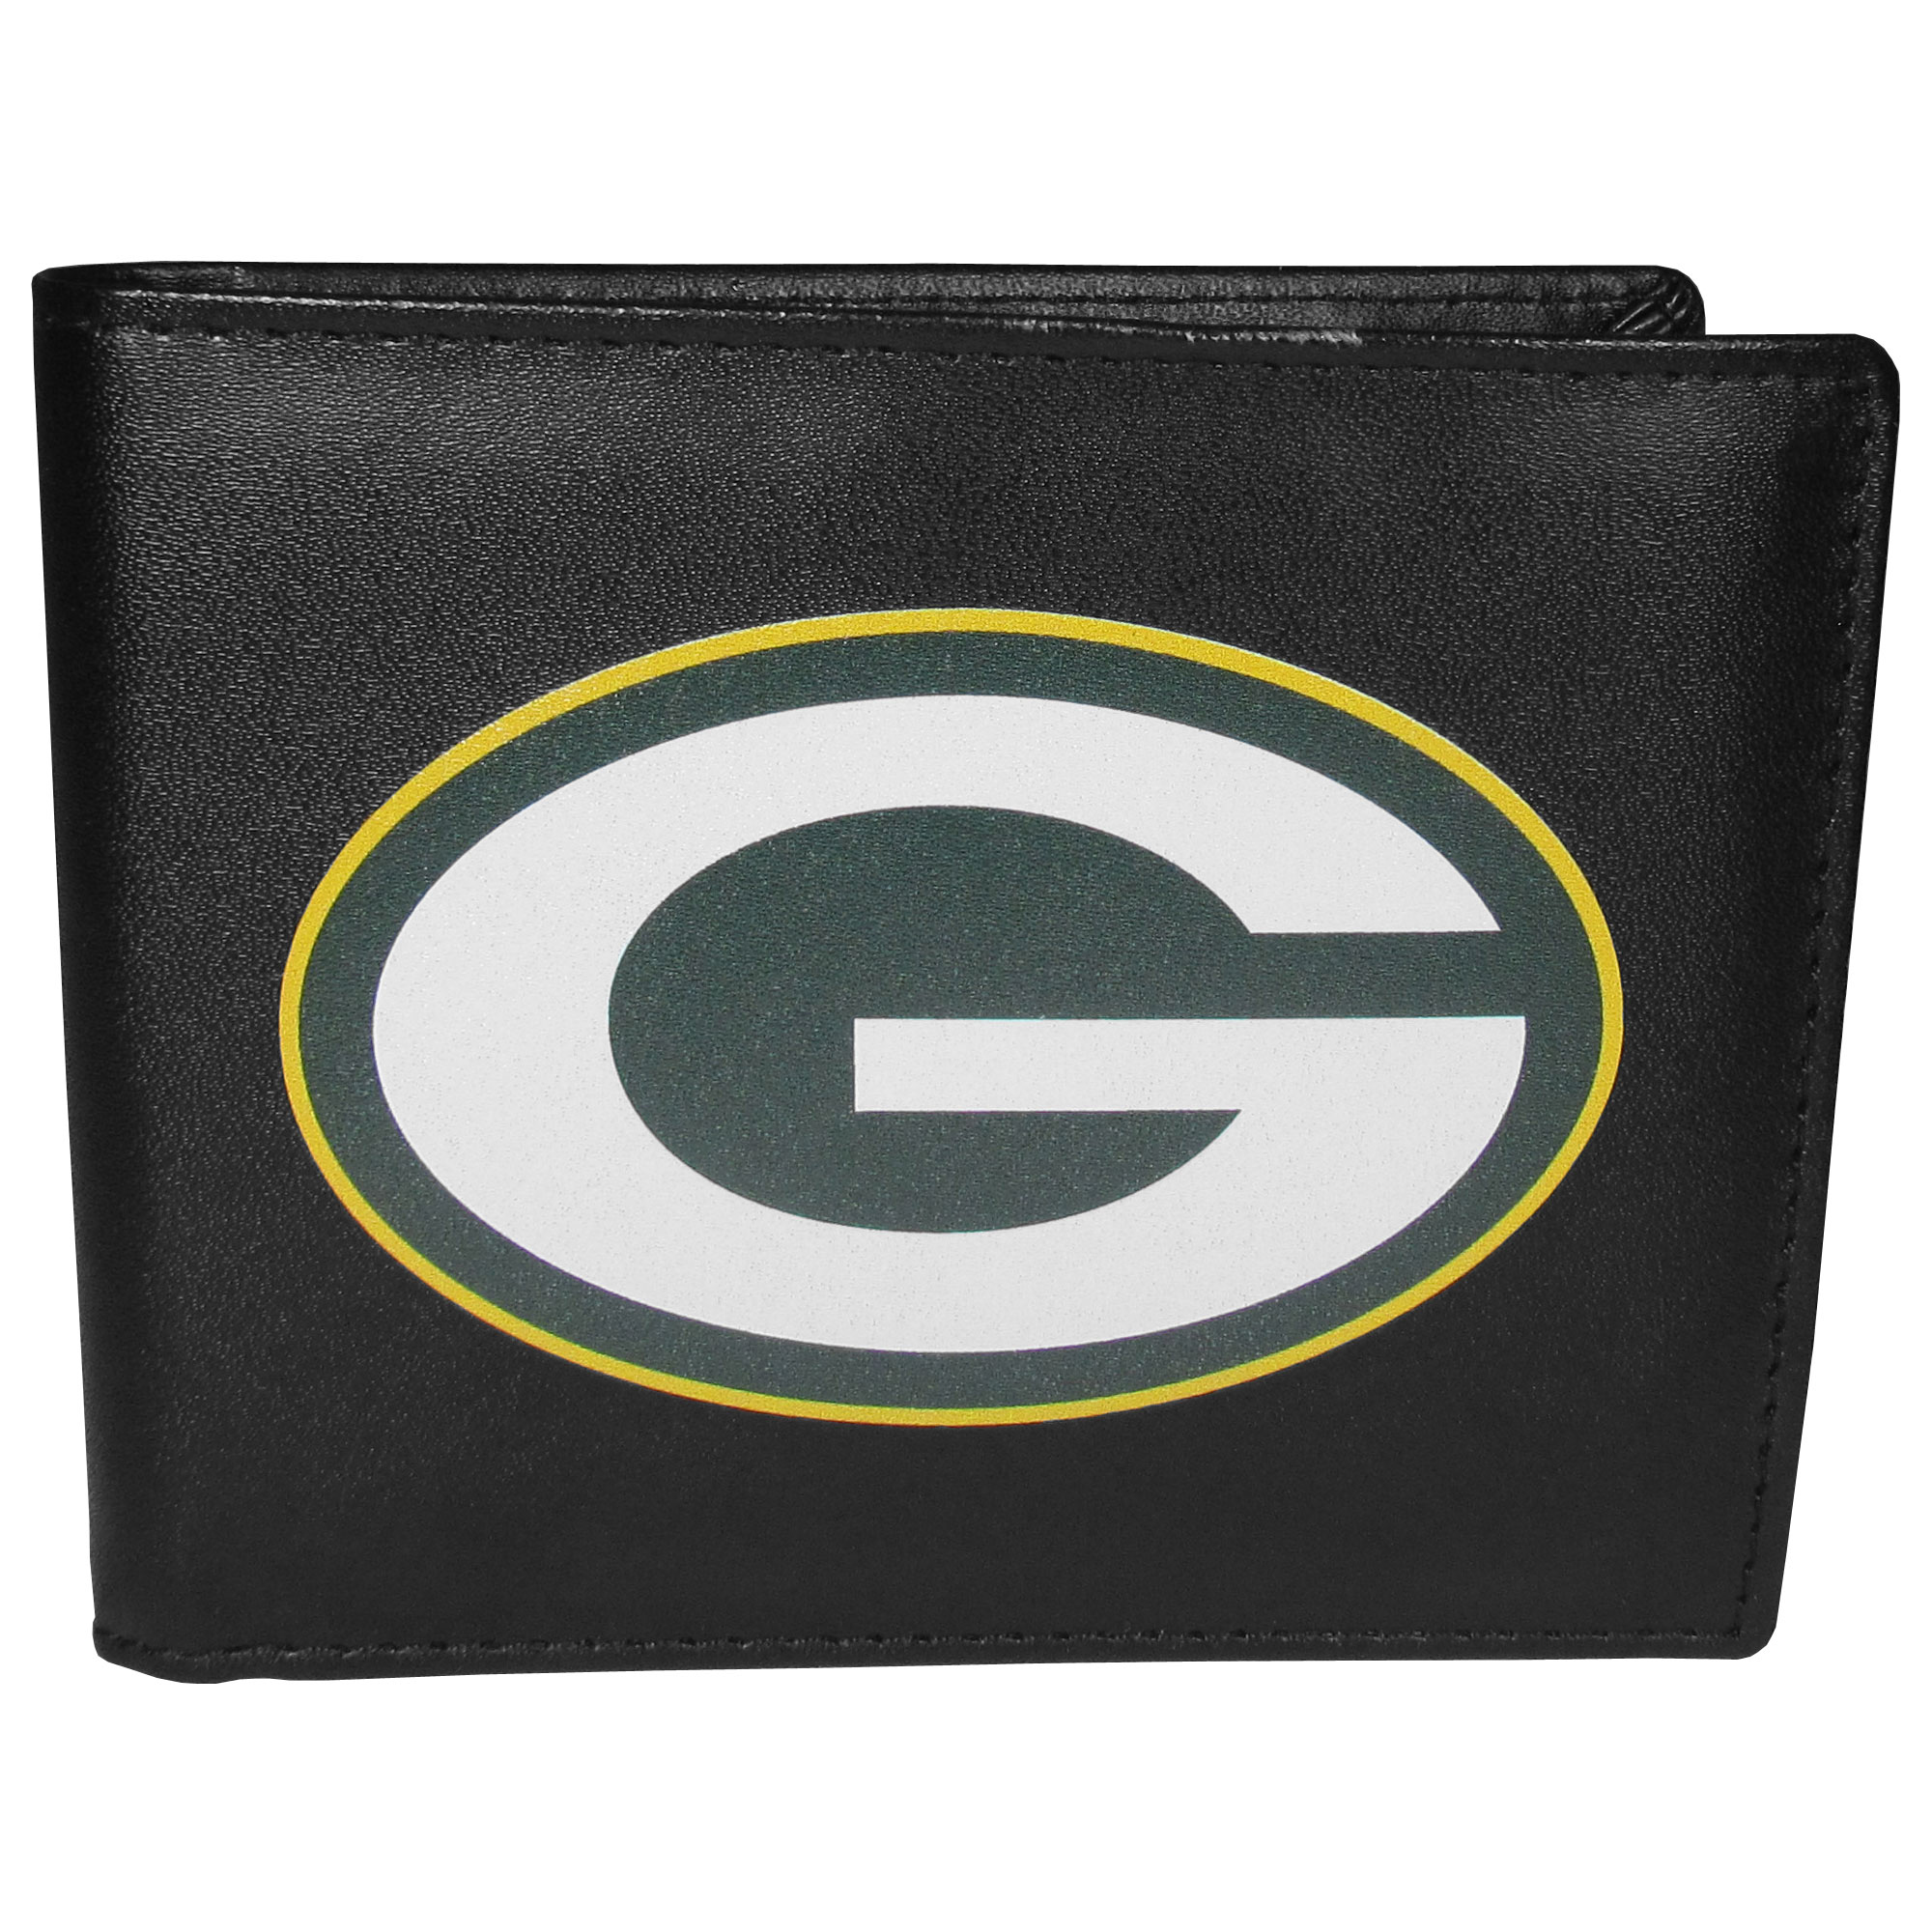 Green Bay Packers Bi-fold Wallet Large Logo - Sports fans do not have to sacrifice style with this classic bi-fold wallet that sports the Green Bay Packers extra large logo. This men's fashion accessory has a leather grain look and expert craftmanship for a quality wallet at a great price. The wallet features inner credit card slots, windowed ID slot and a large billfold pocket. The front of the wallet features a printed team logo.